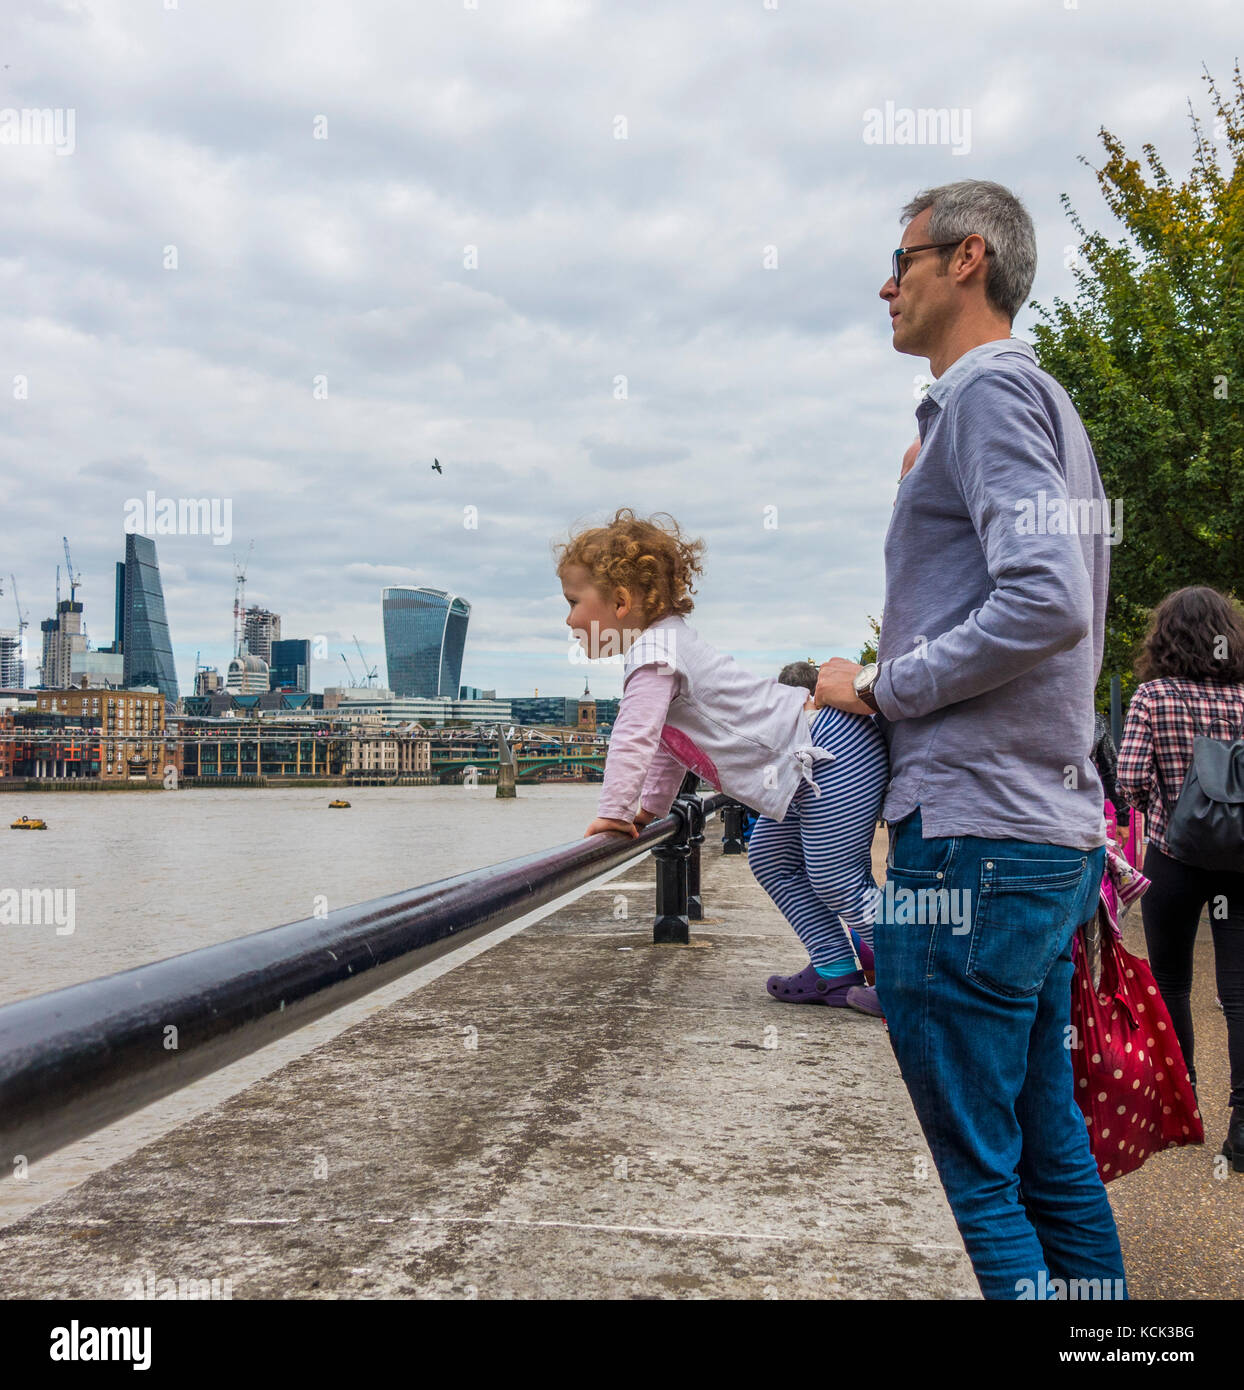 A middle aged father holding his curly haired young daughter, grasping a safety rail, overlooking the River Thames, - Stock Image